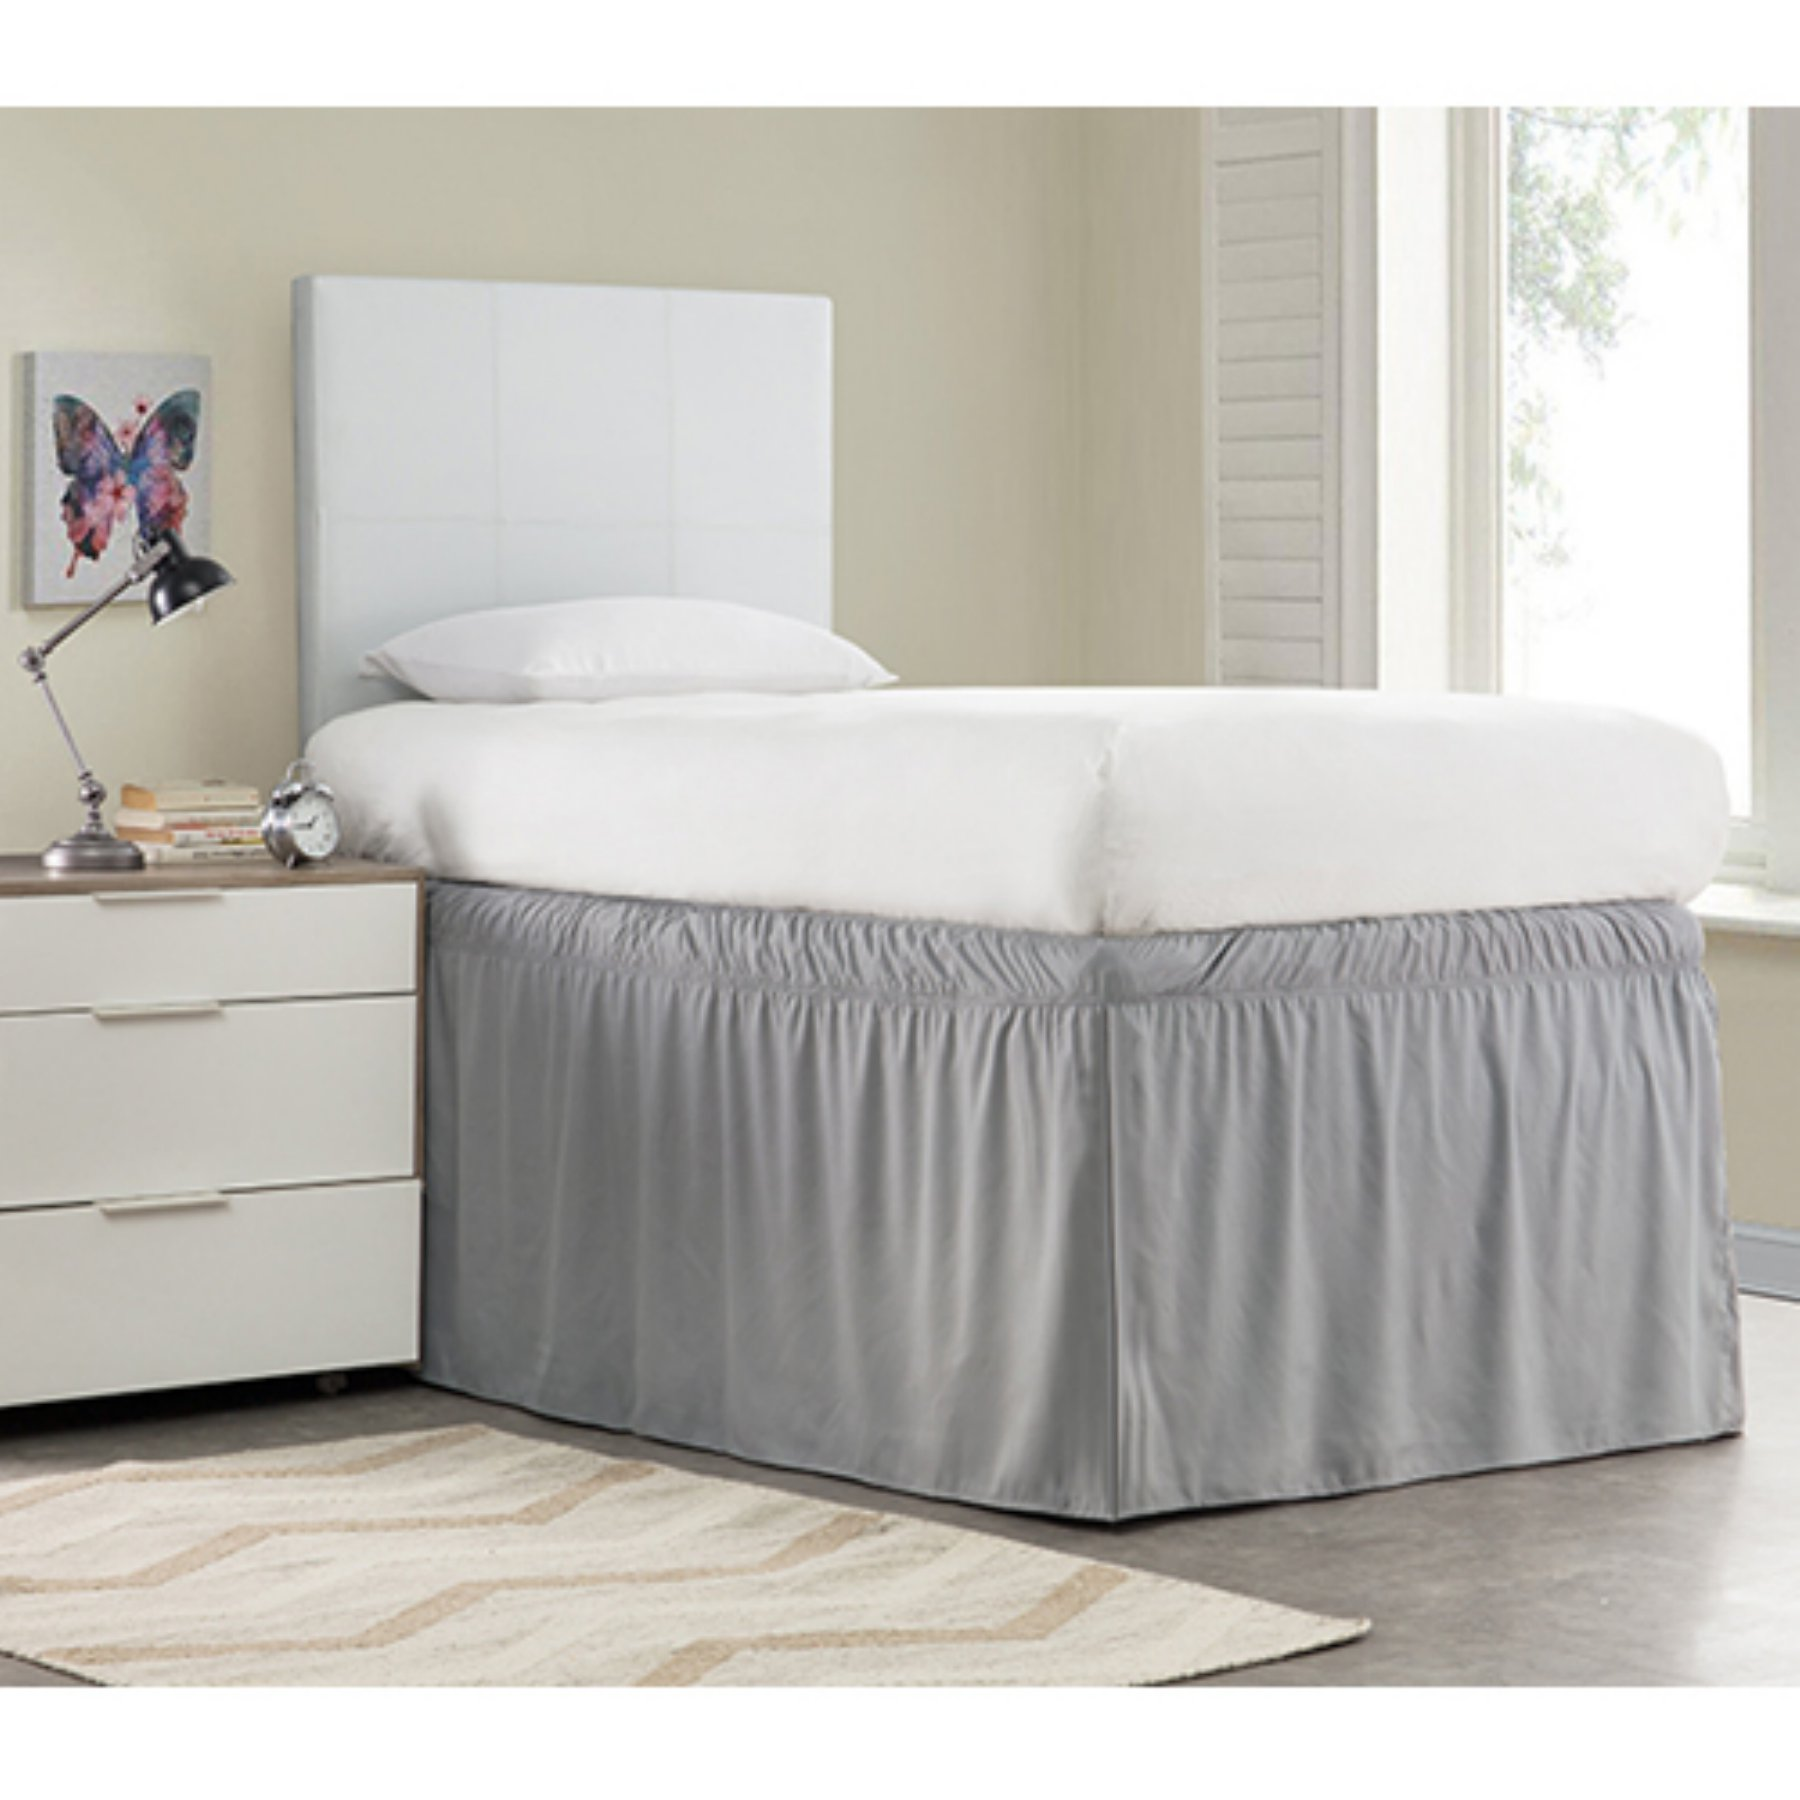 Ruffled Bed Skirt Twin Xl By Byourbed Products Twin Xl Bedding